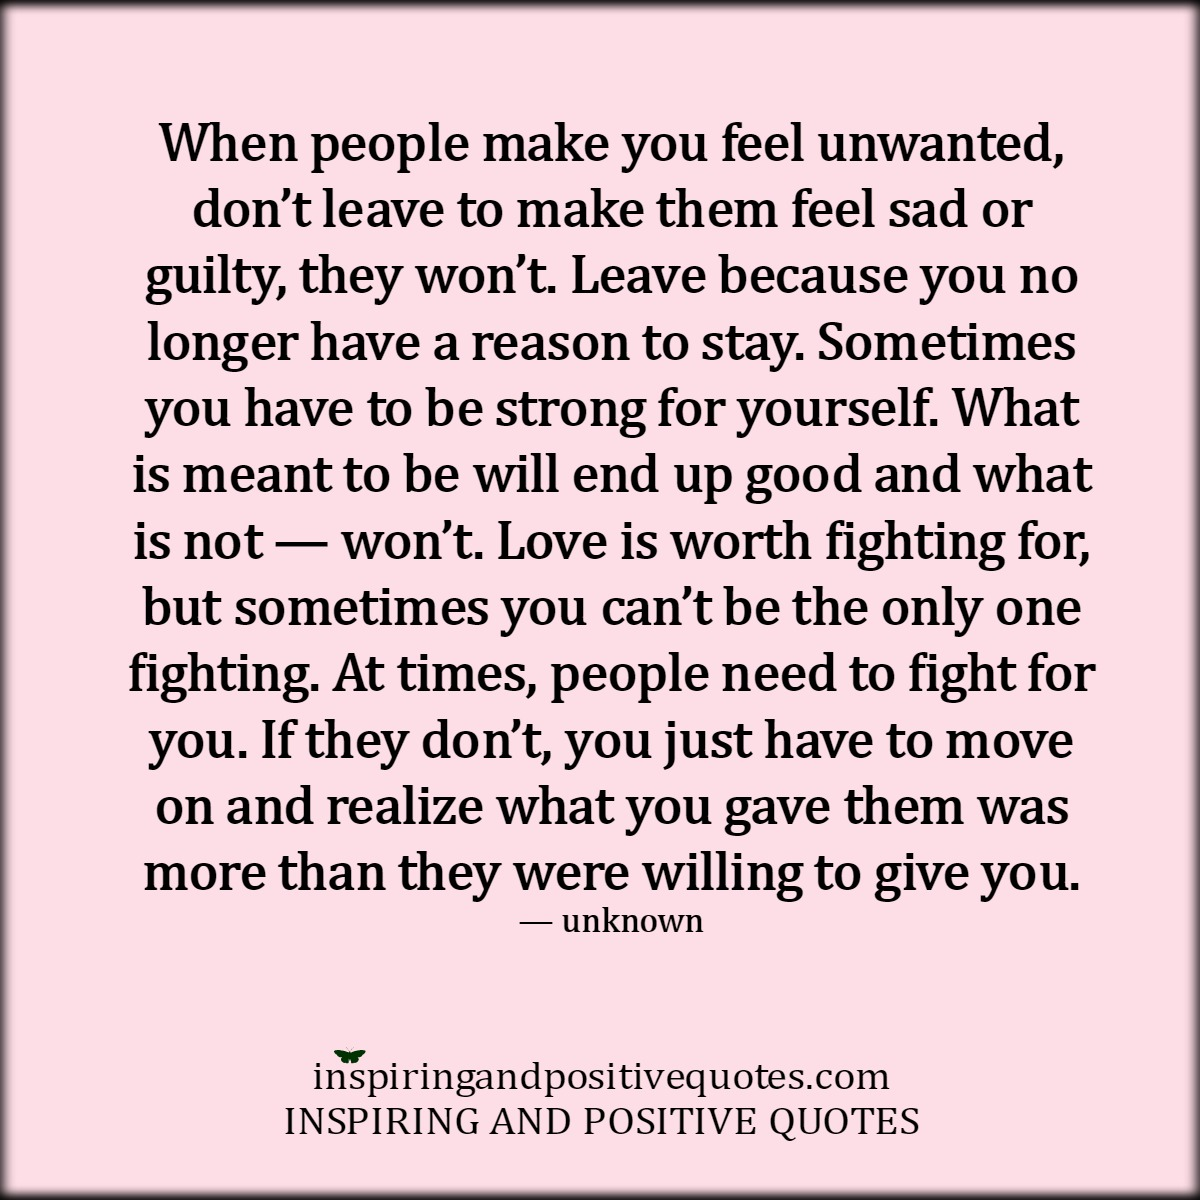 Positive People Quotes Encouraging Quotes  Page 2  Inspiring And Positive Quotes